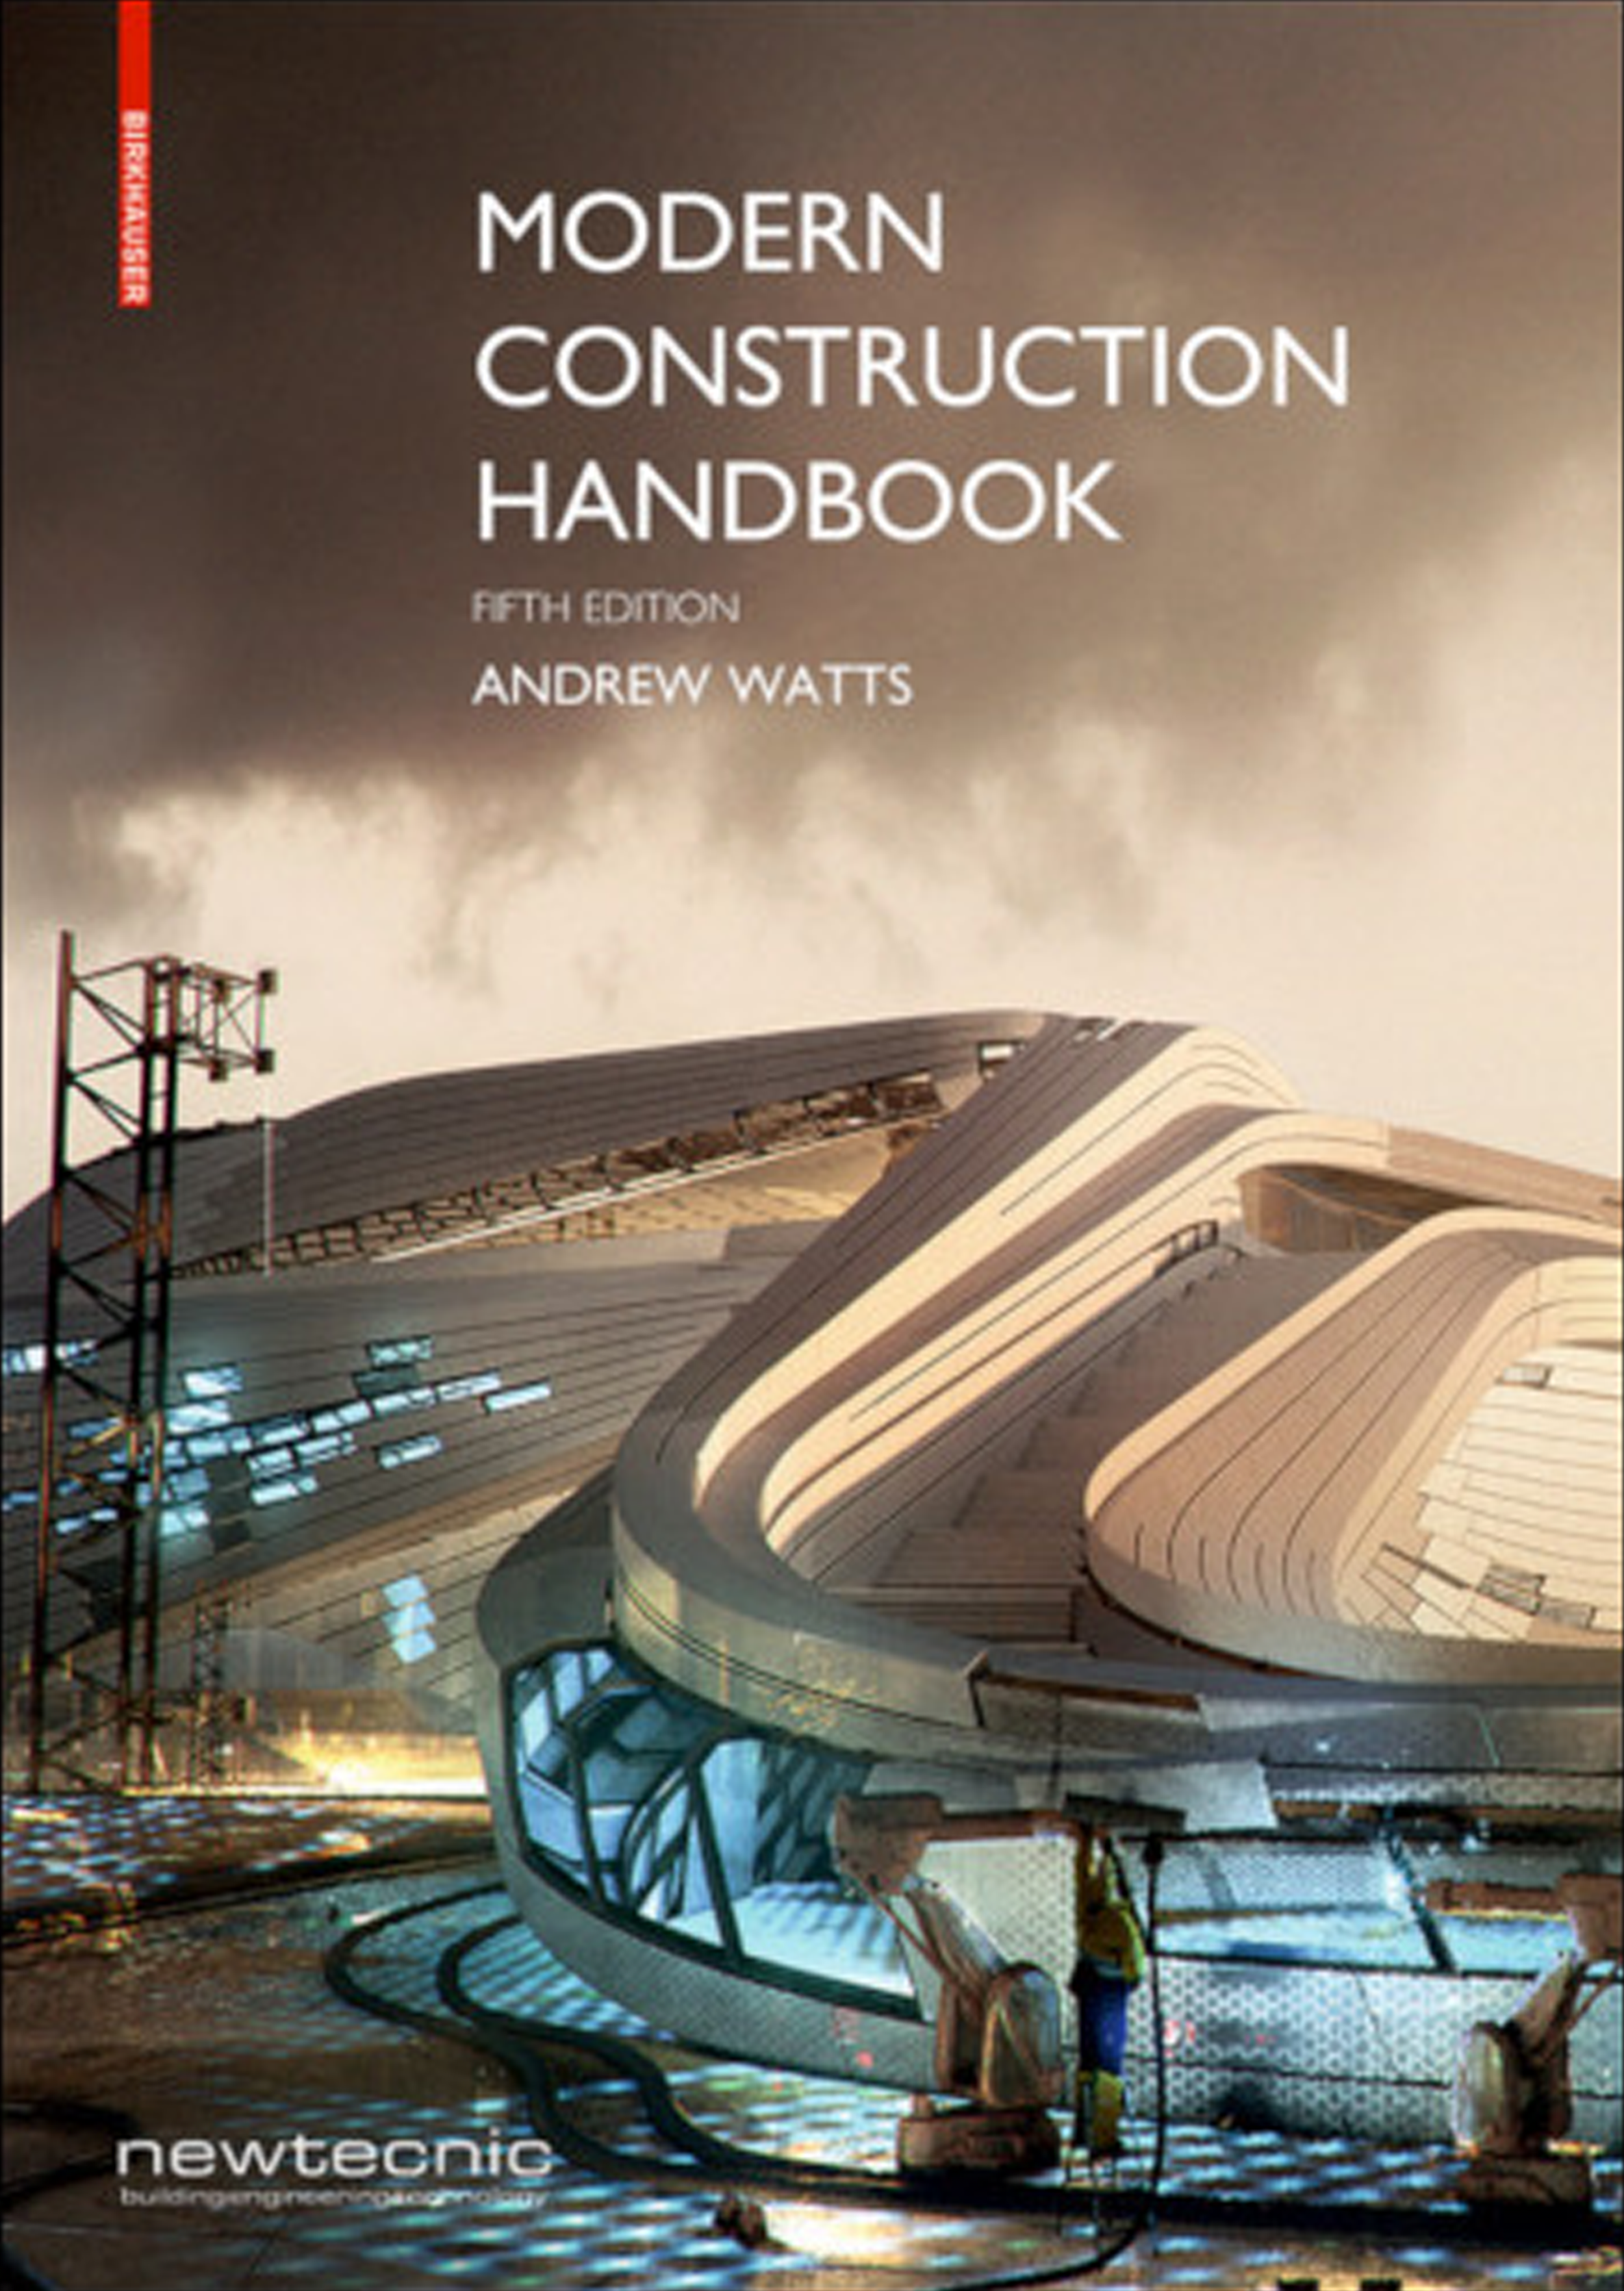 Modern Construction Handbook  has become a classic in advanced building construction literature, with its clear structure covering the chapters Material, Wall, Roof, Structure, Environment, and Applications .